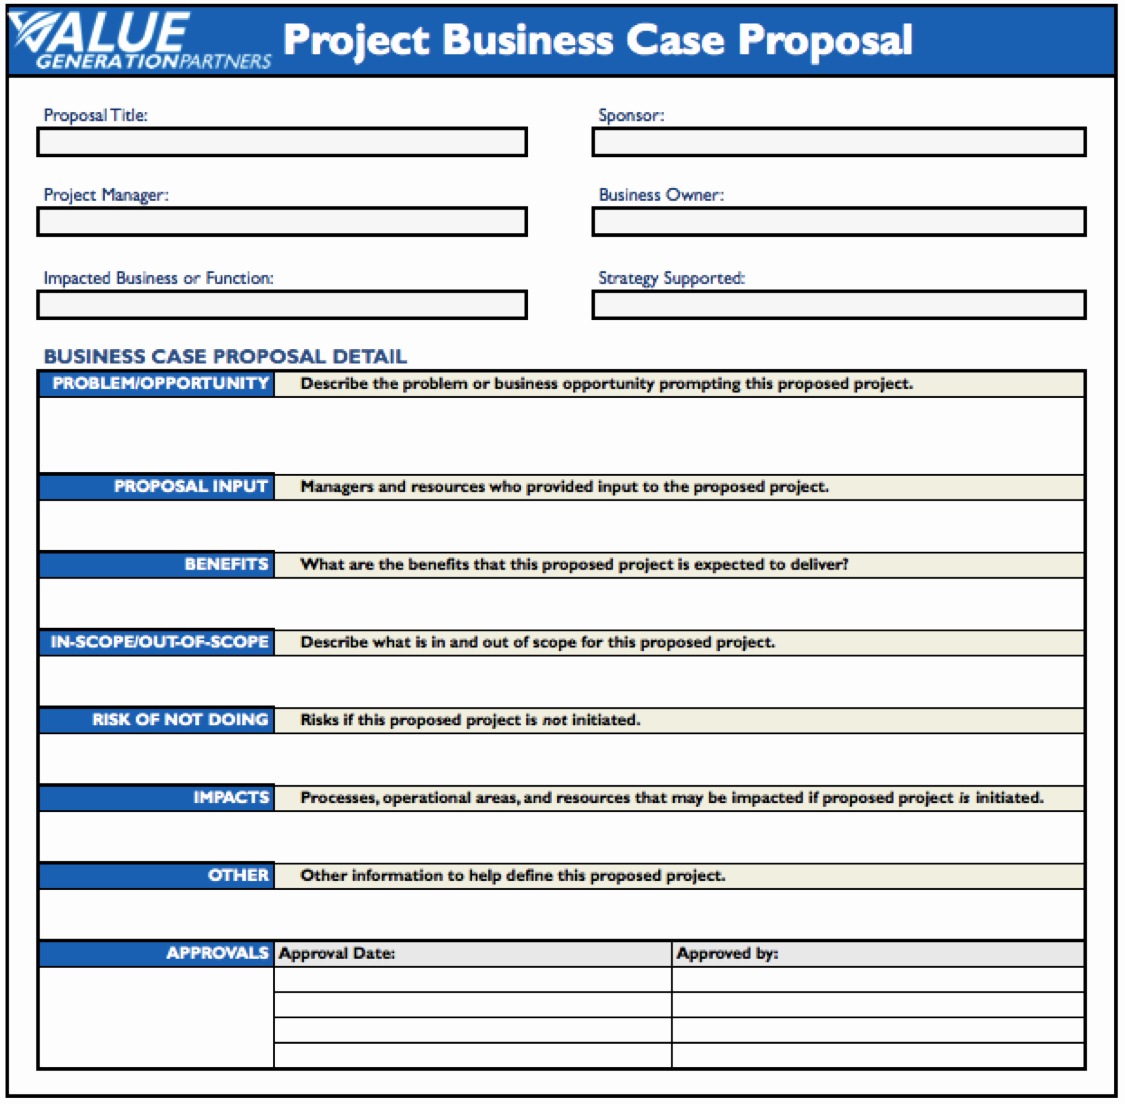 Project Proposal Outline Template Luxury Generating Value by Using A Project Business Case Proposal